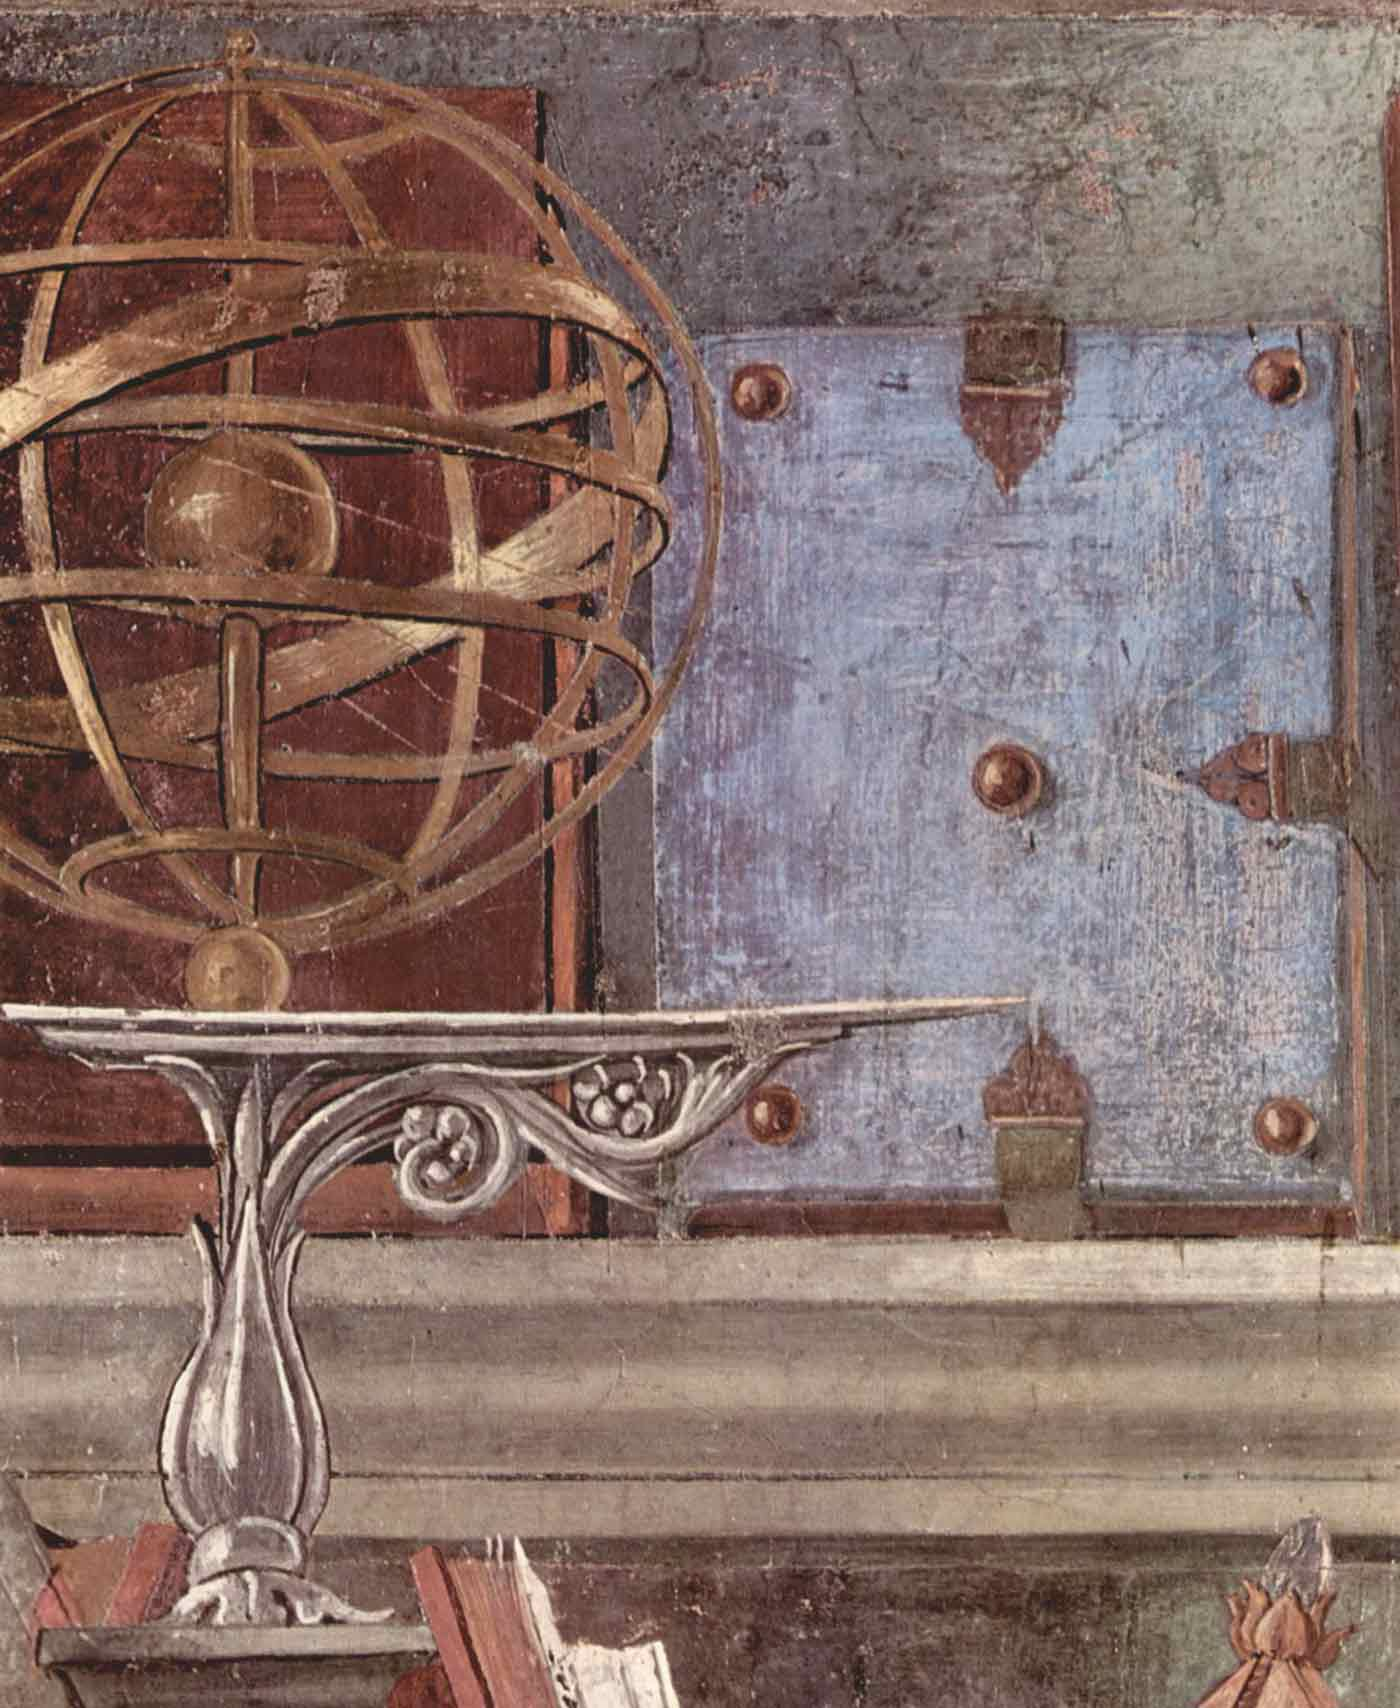 An armillary sphere in a painting by Sandro Botticelli, circa 1480.